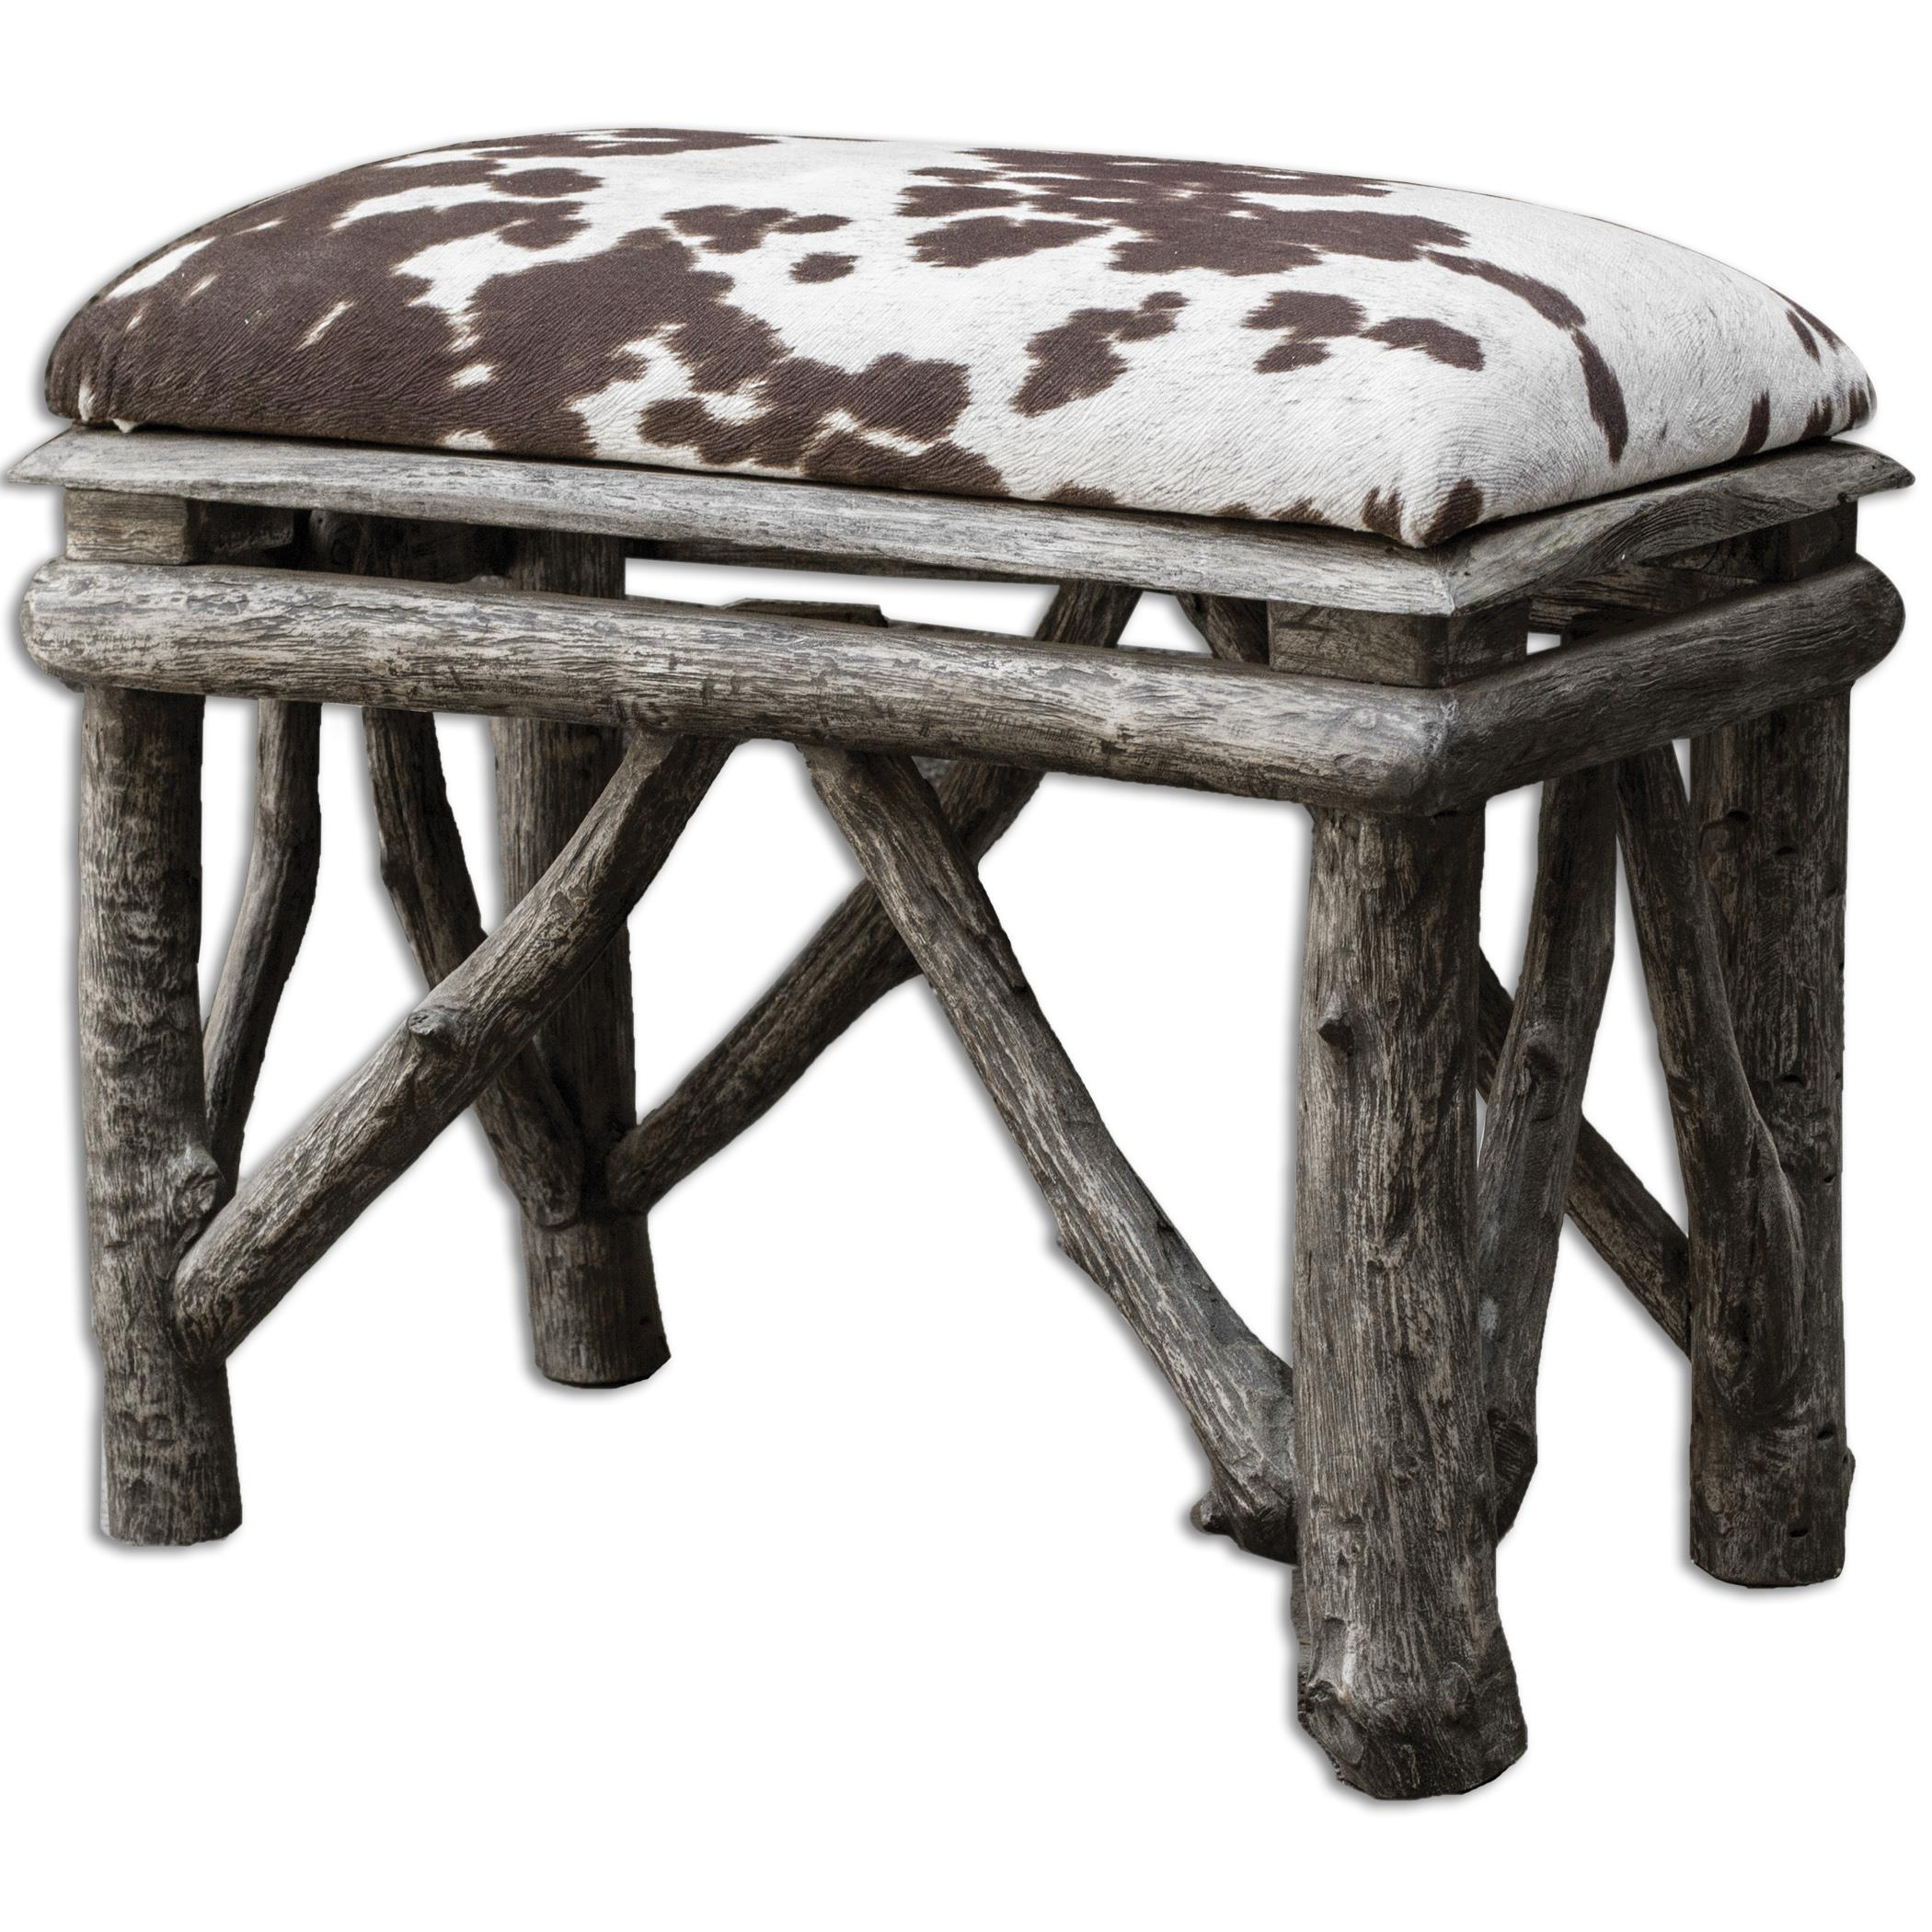 Accent Furniture - Benches Chavi Small Bench by Uttermost at Goffena Furniture & Mattress Center